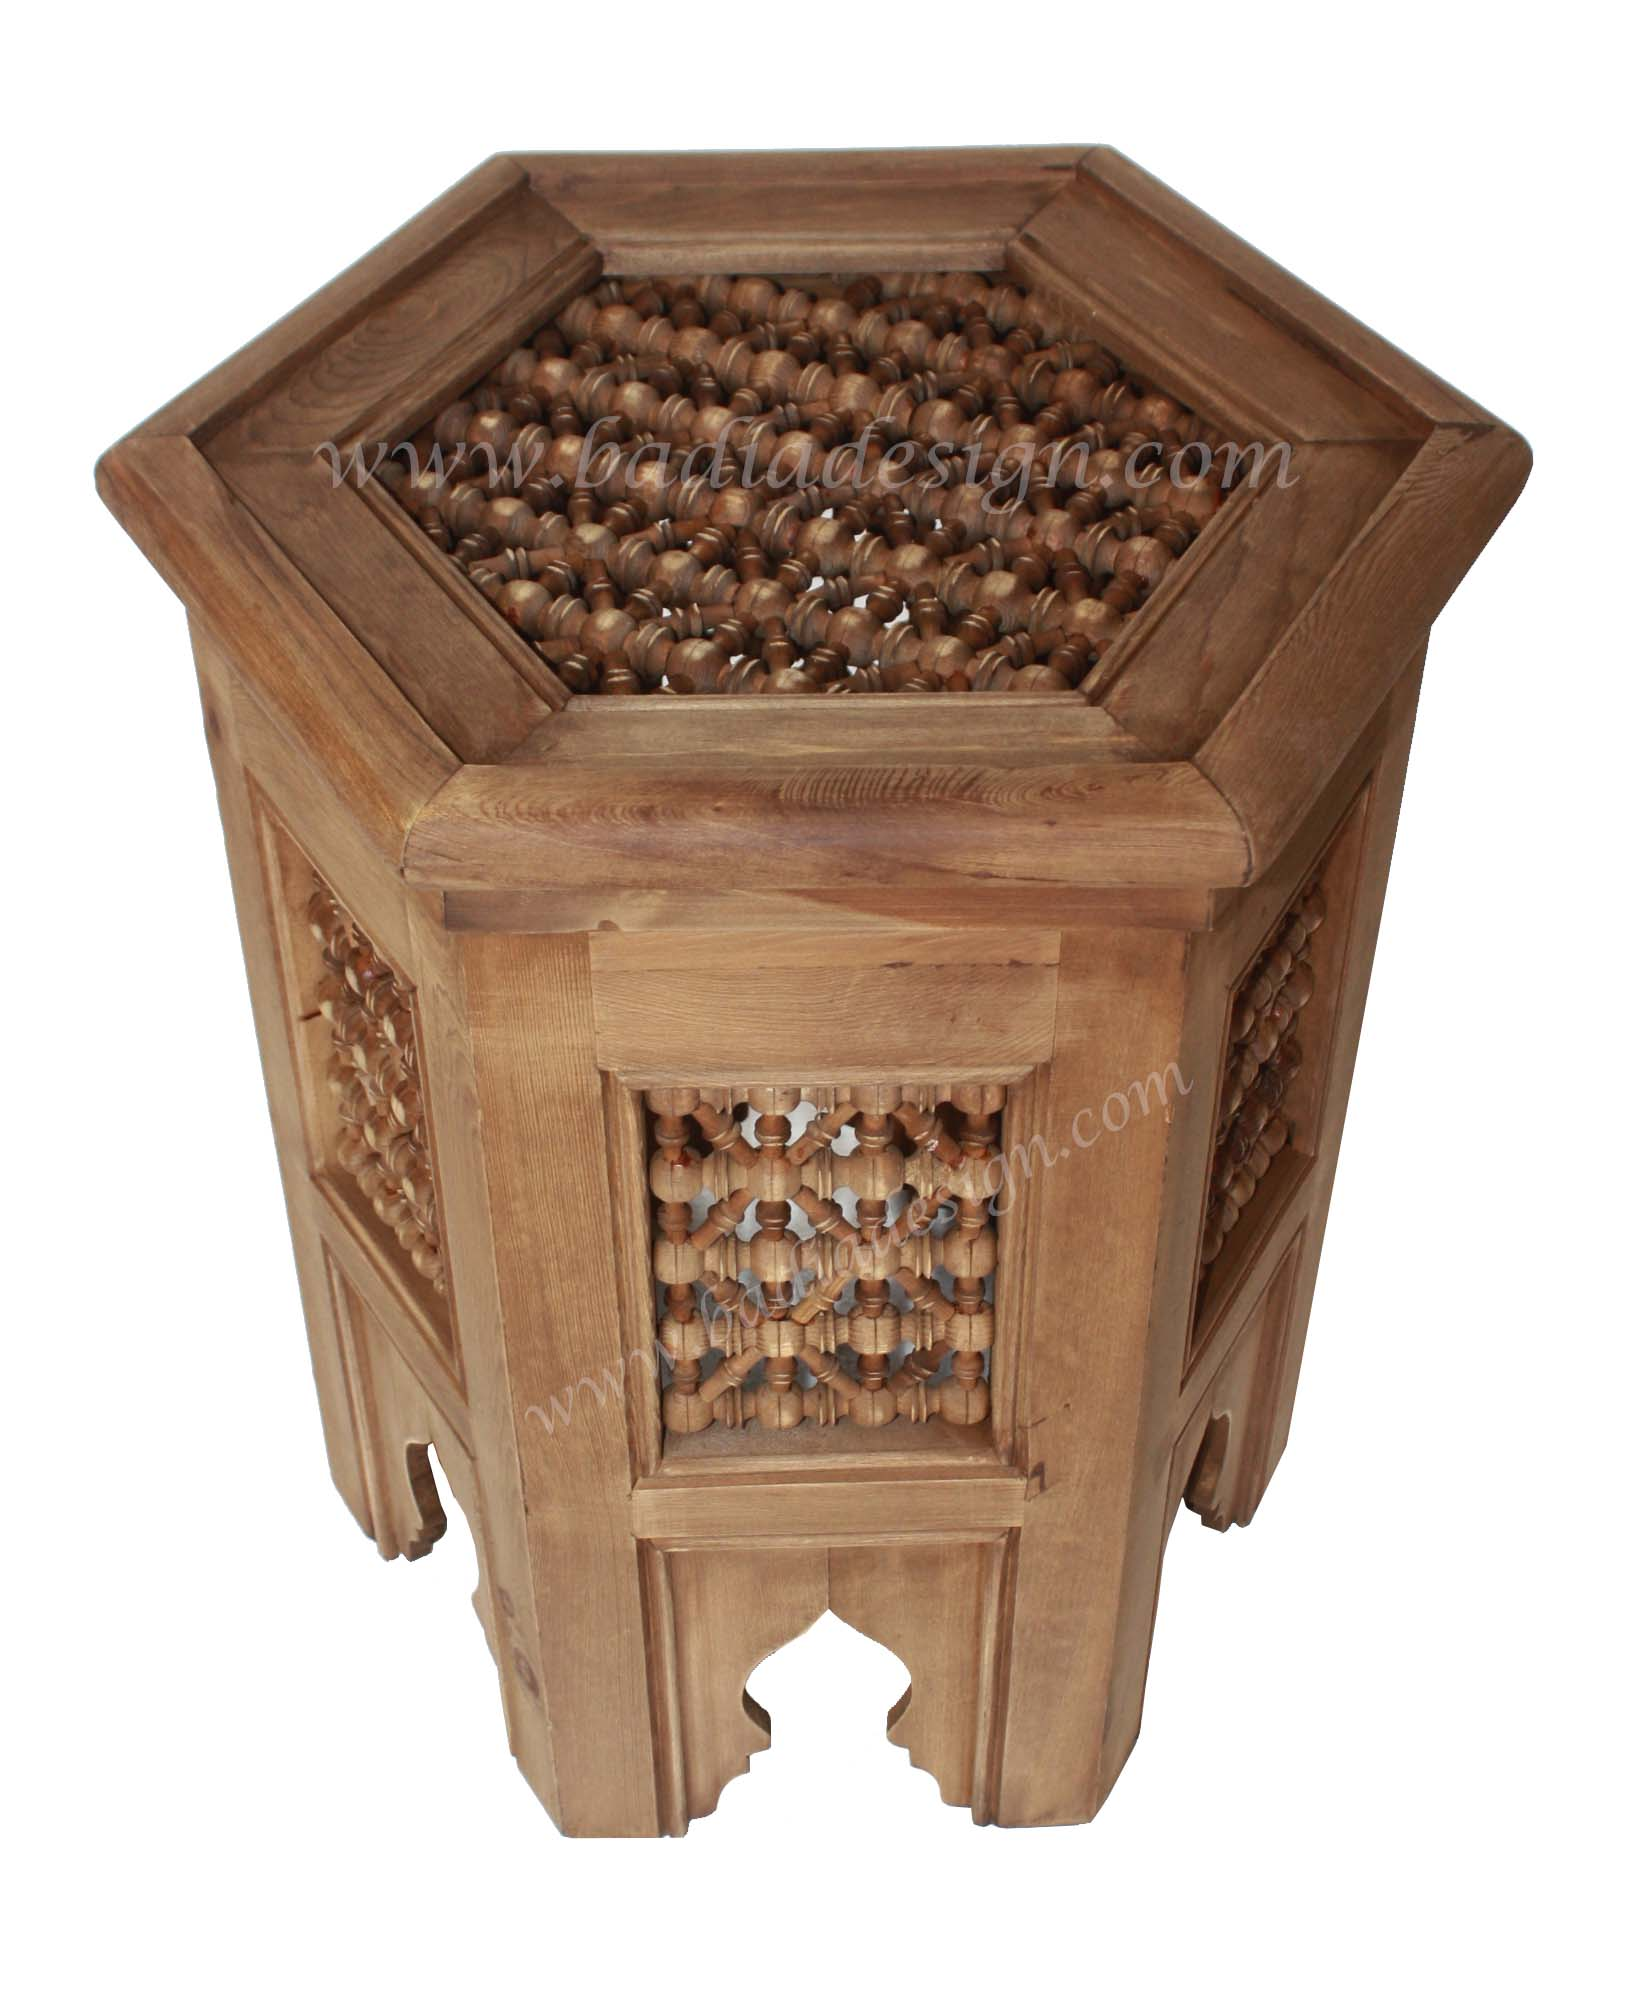 moroccan-wooden-side-table-cw-st012-1.jpg